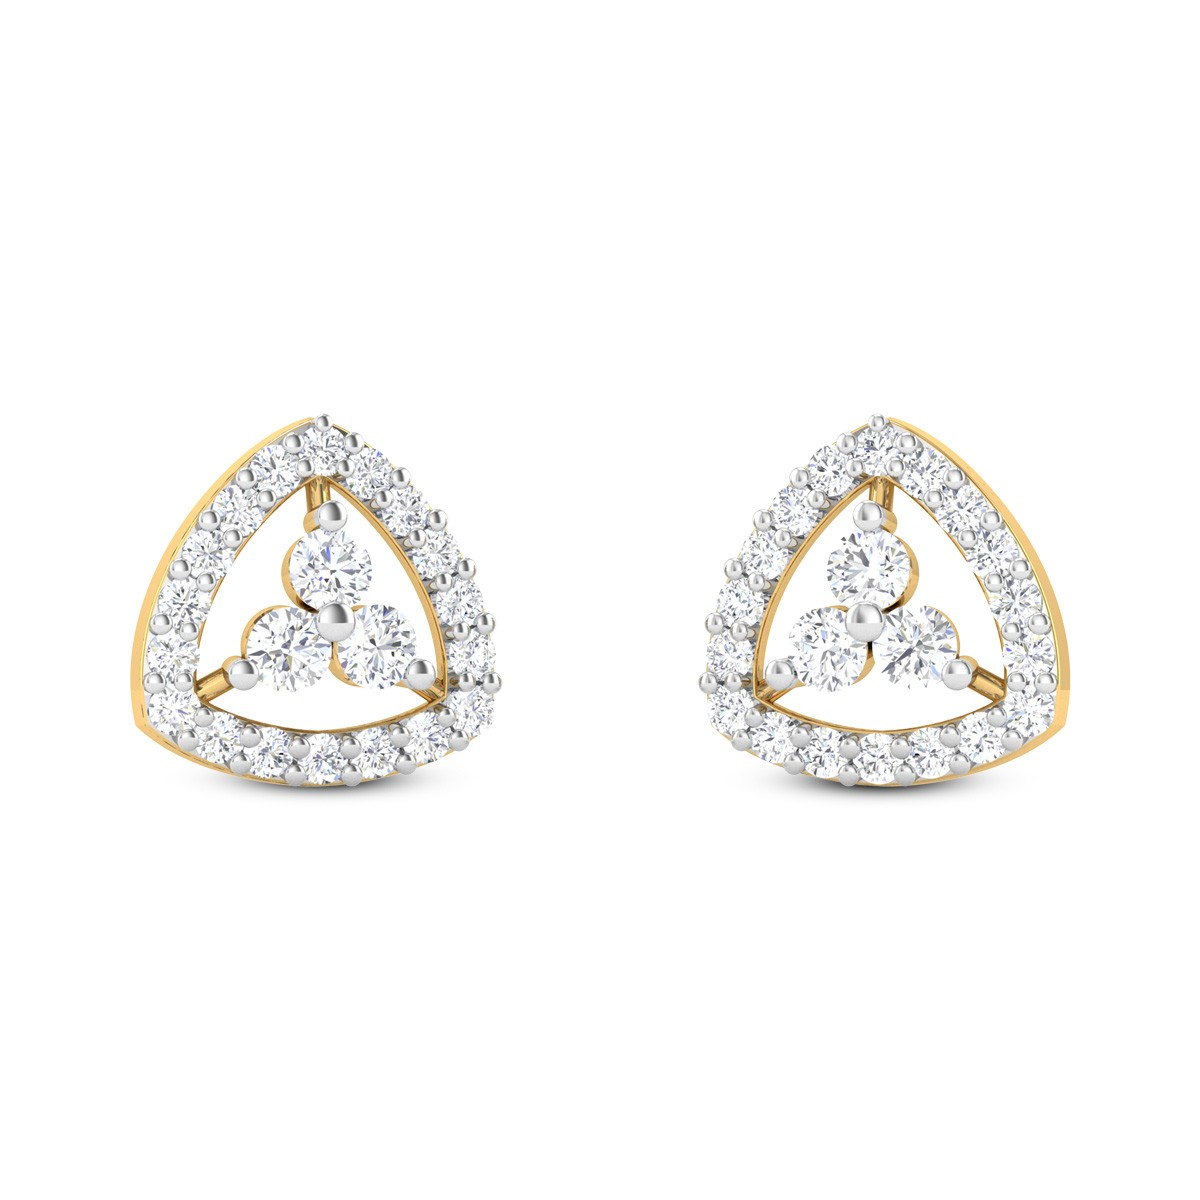 Aveira Diamond Earrings